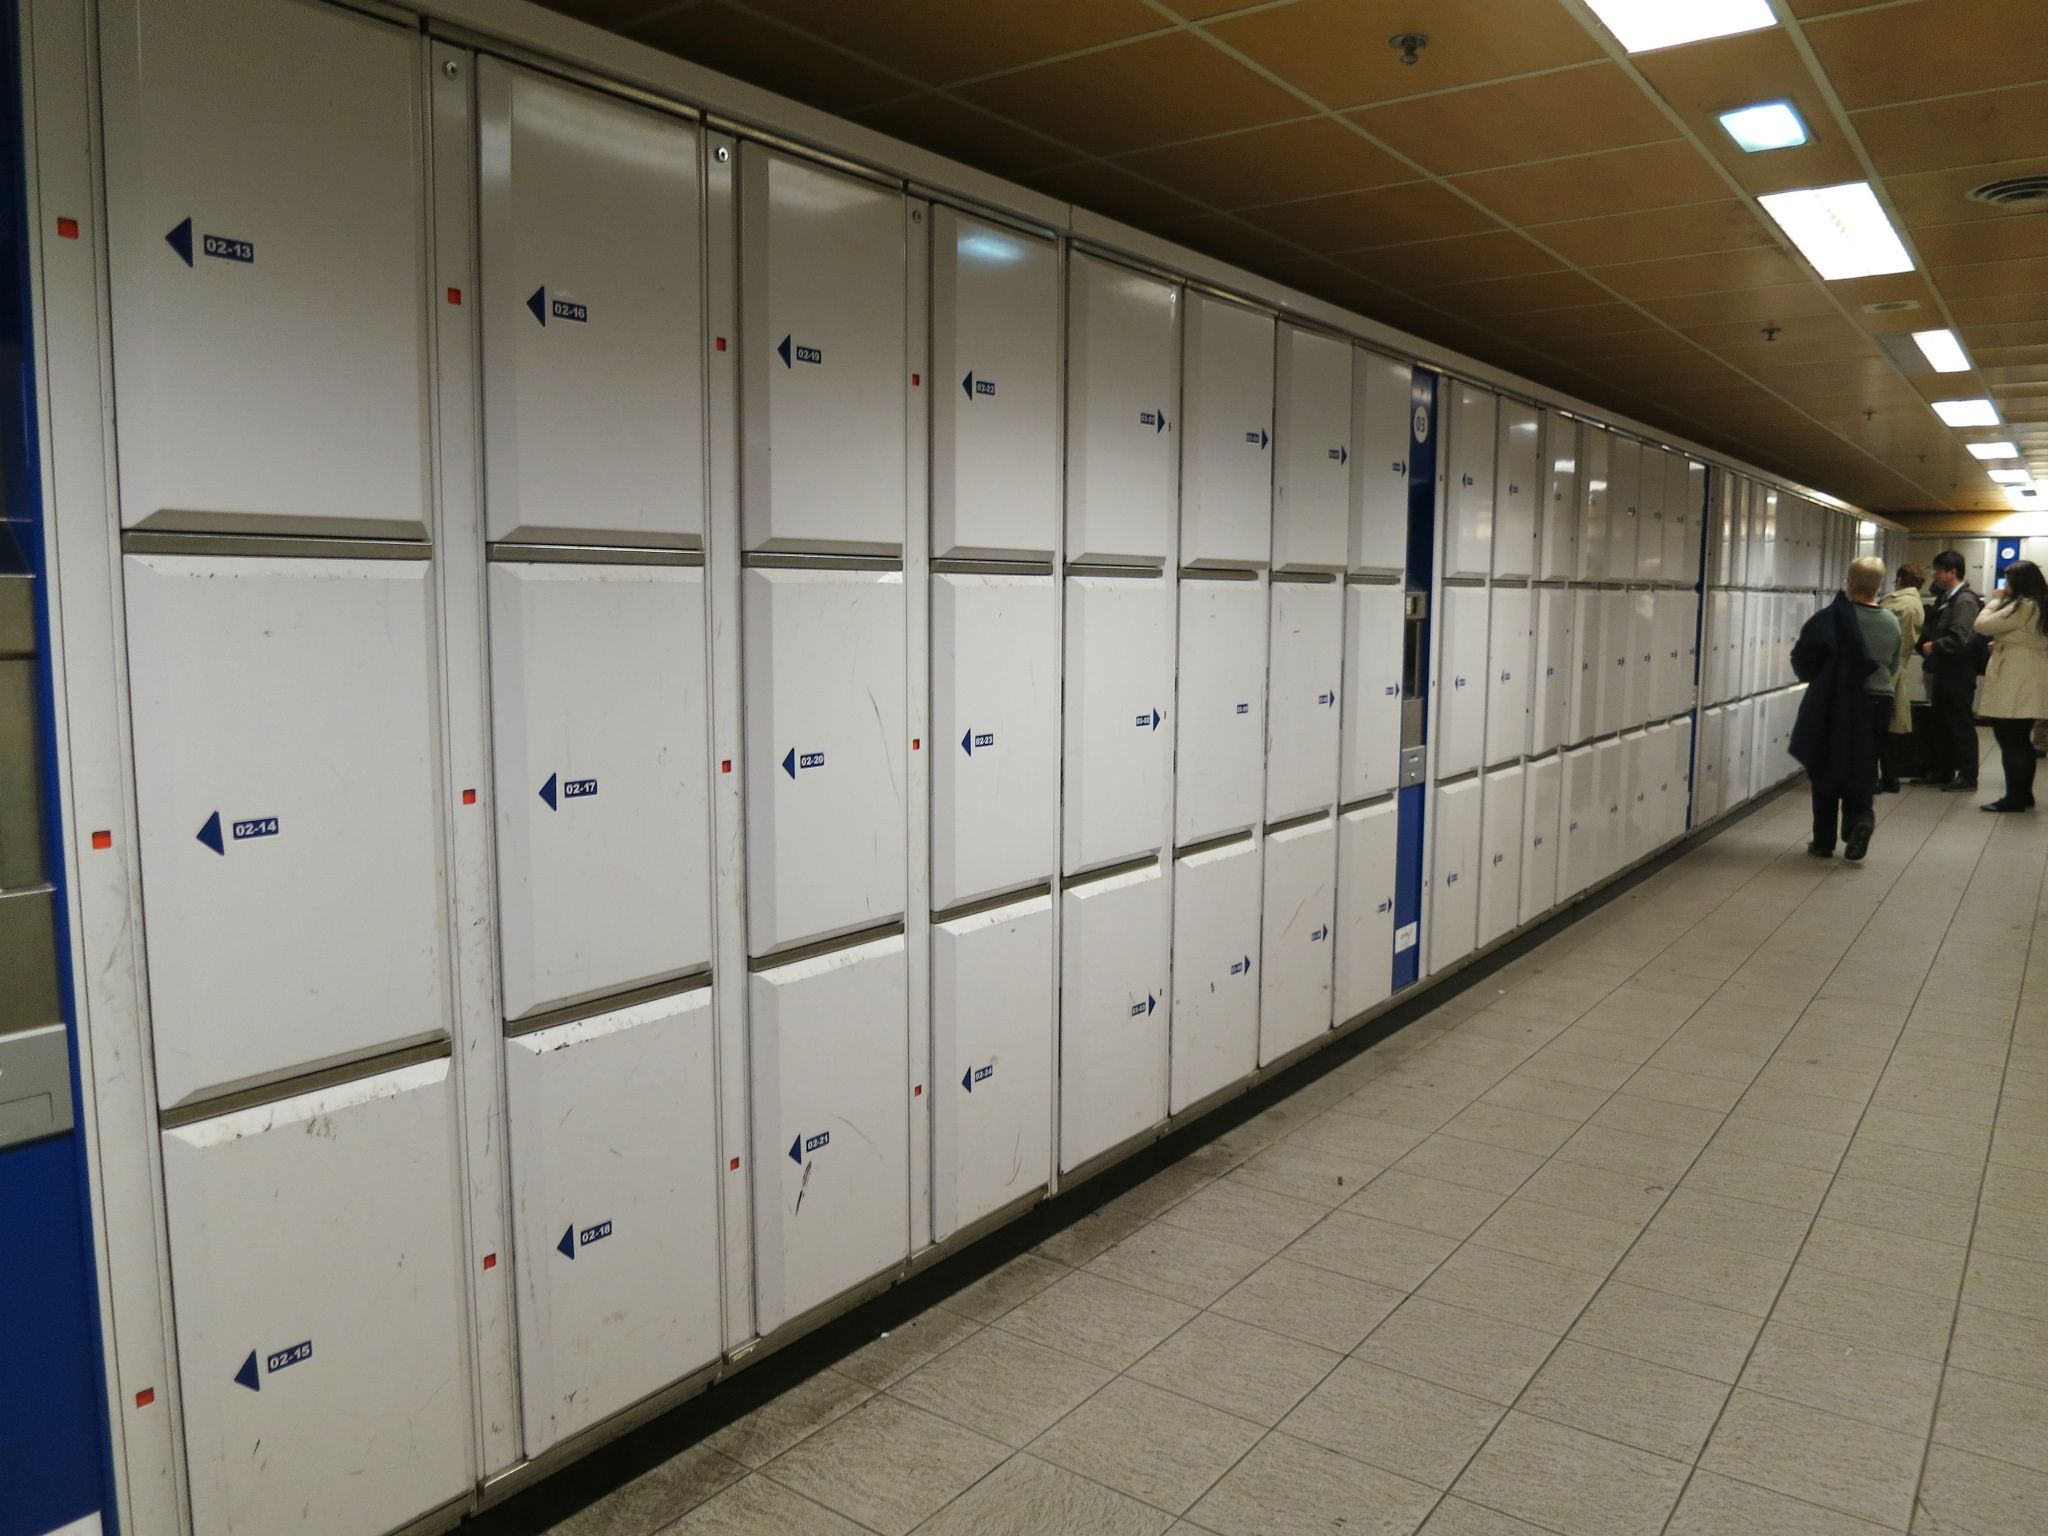 In The East Wing Of Station You Will Find Lockers To Your Luggage